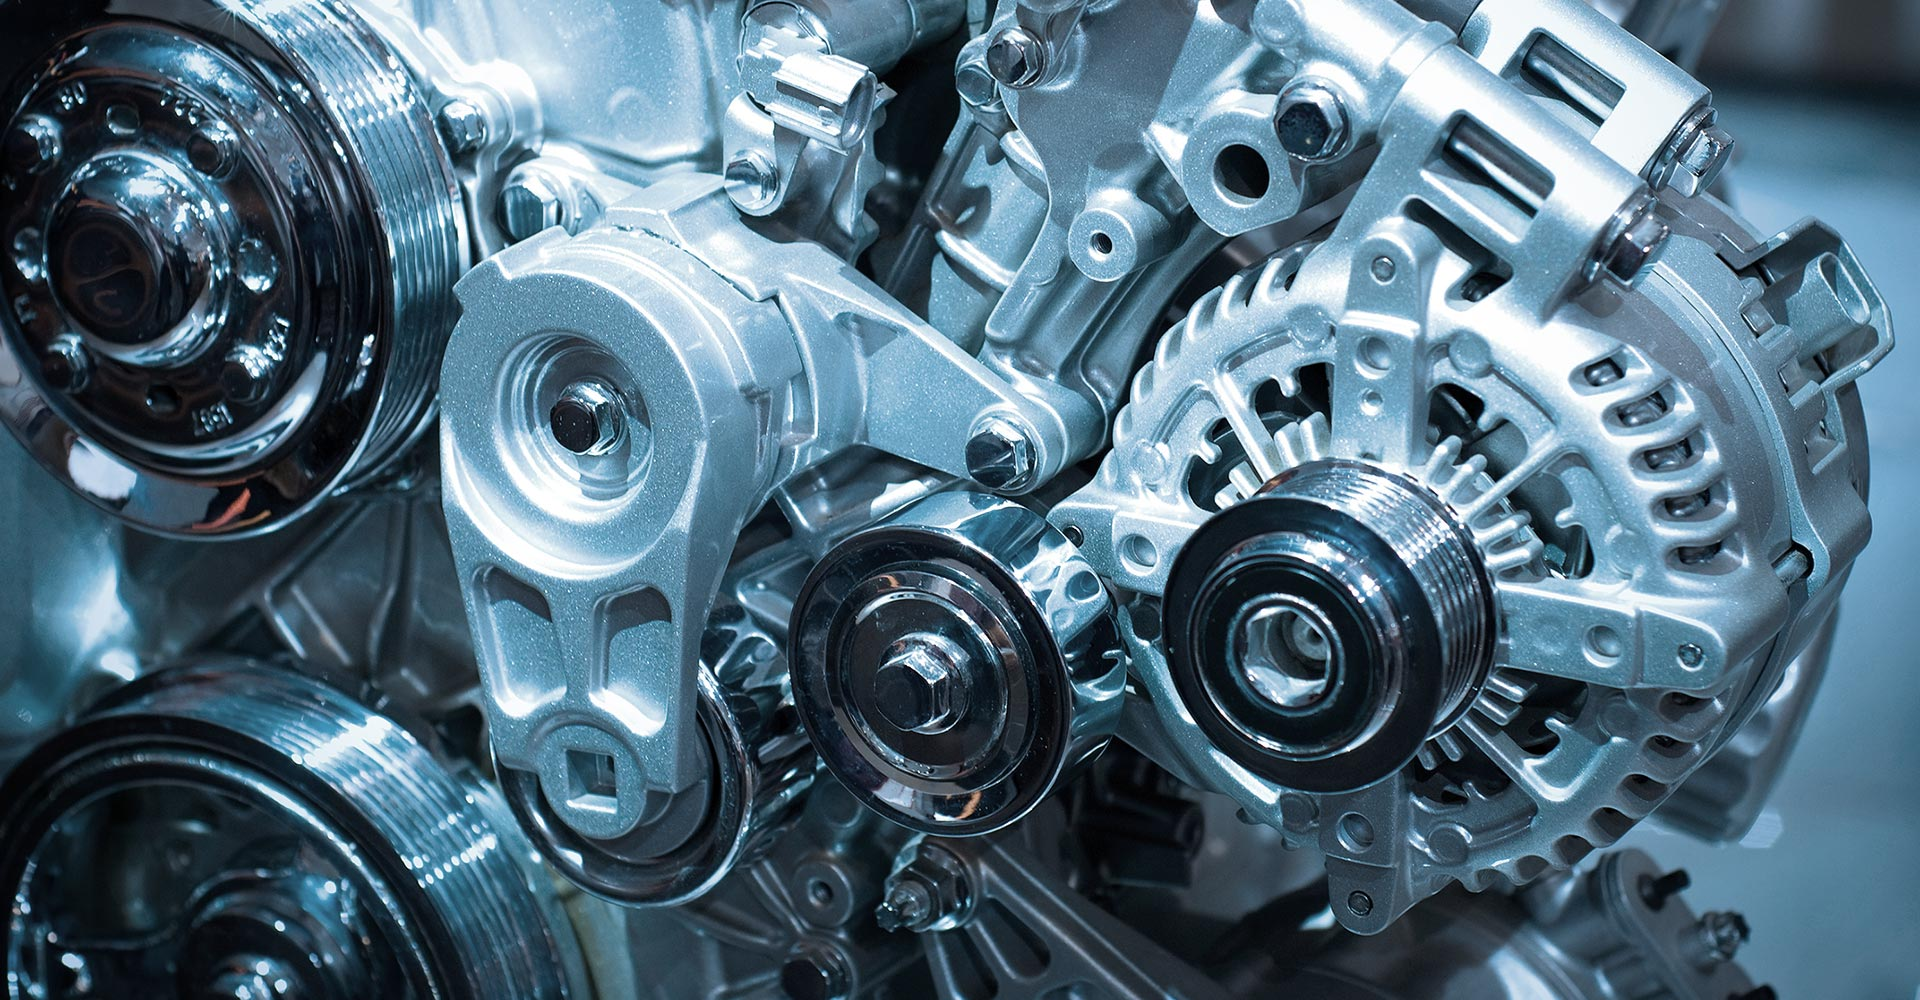 Get Help From The Expert For Fuel Injection And Engine Rebuilds